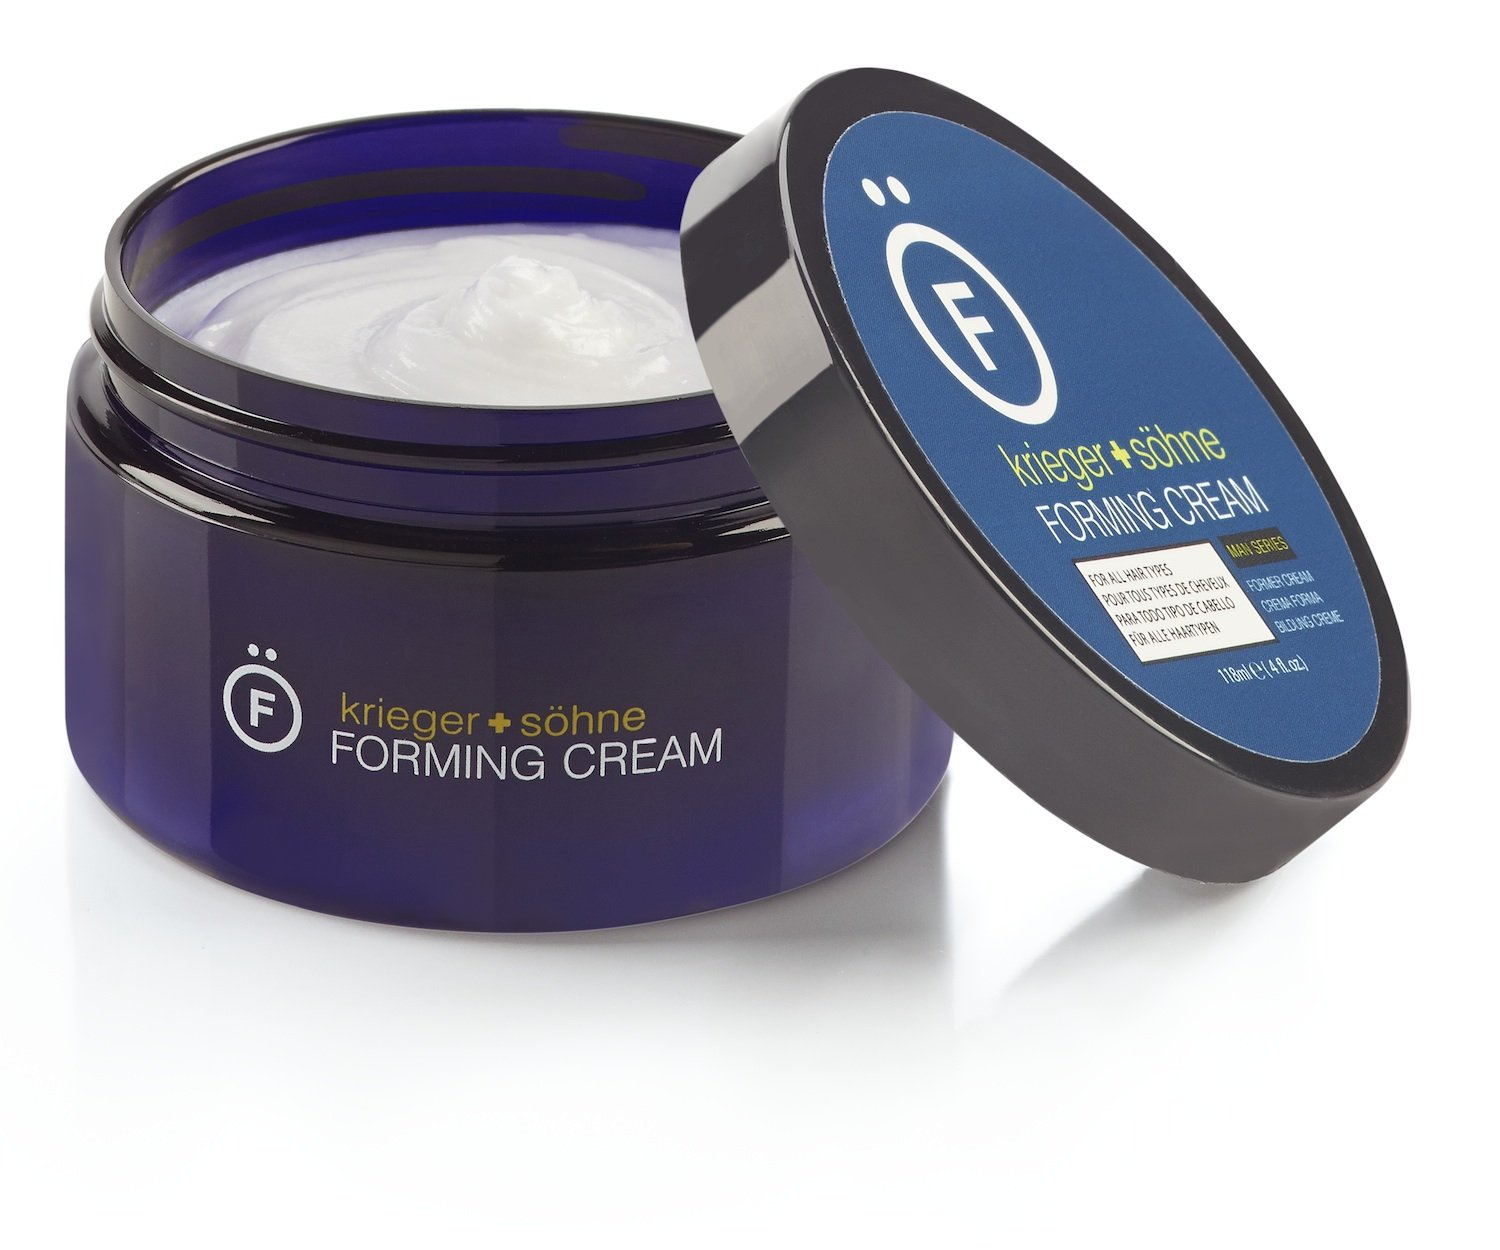 Premium Forming Cream For Men - 4oz jar - K+S Salon Quality Hair Care Products for Long & Short Hair – Natural Matte Finish & Medium Hold - Large 4oz Size